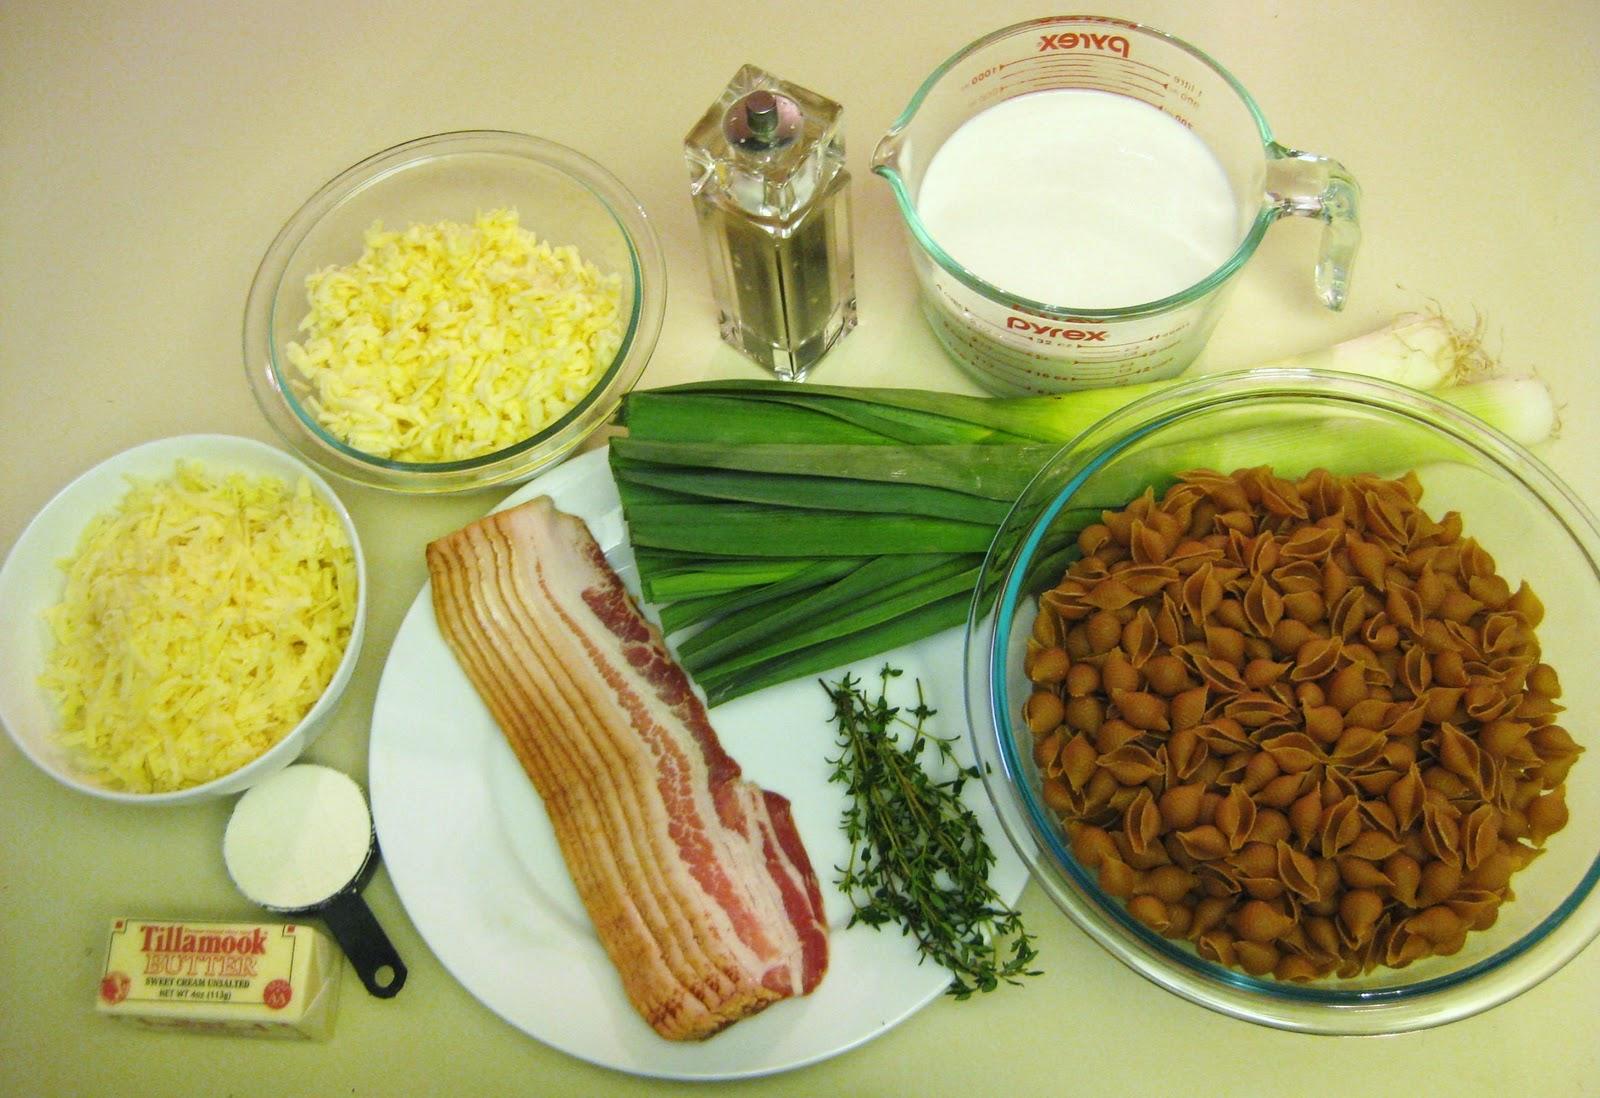 The Joyful Table: Macaroni and Cheese with Bacon, Leeks and Thyme